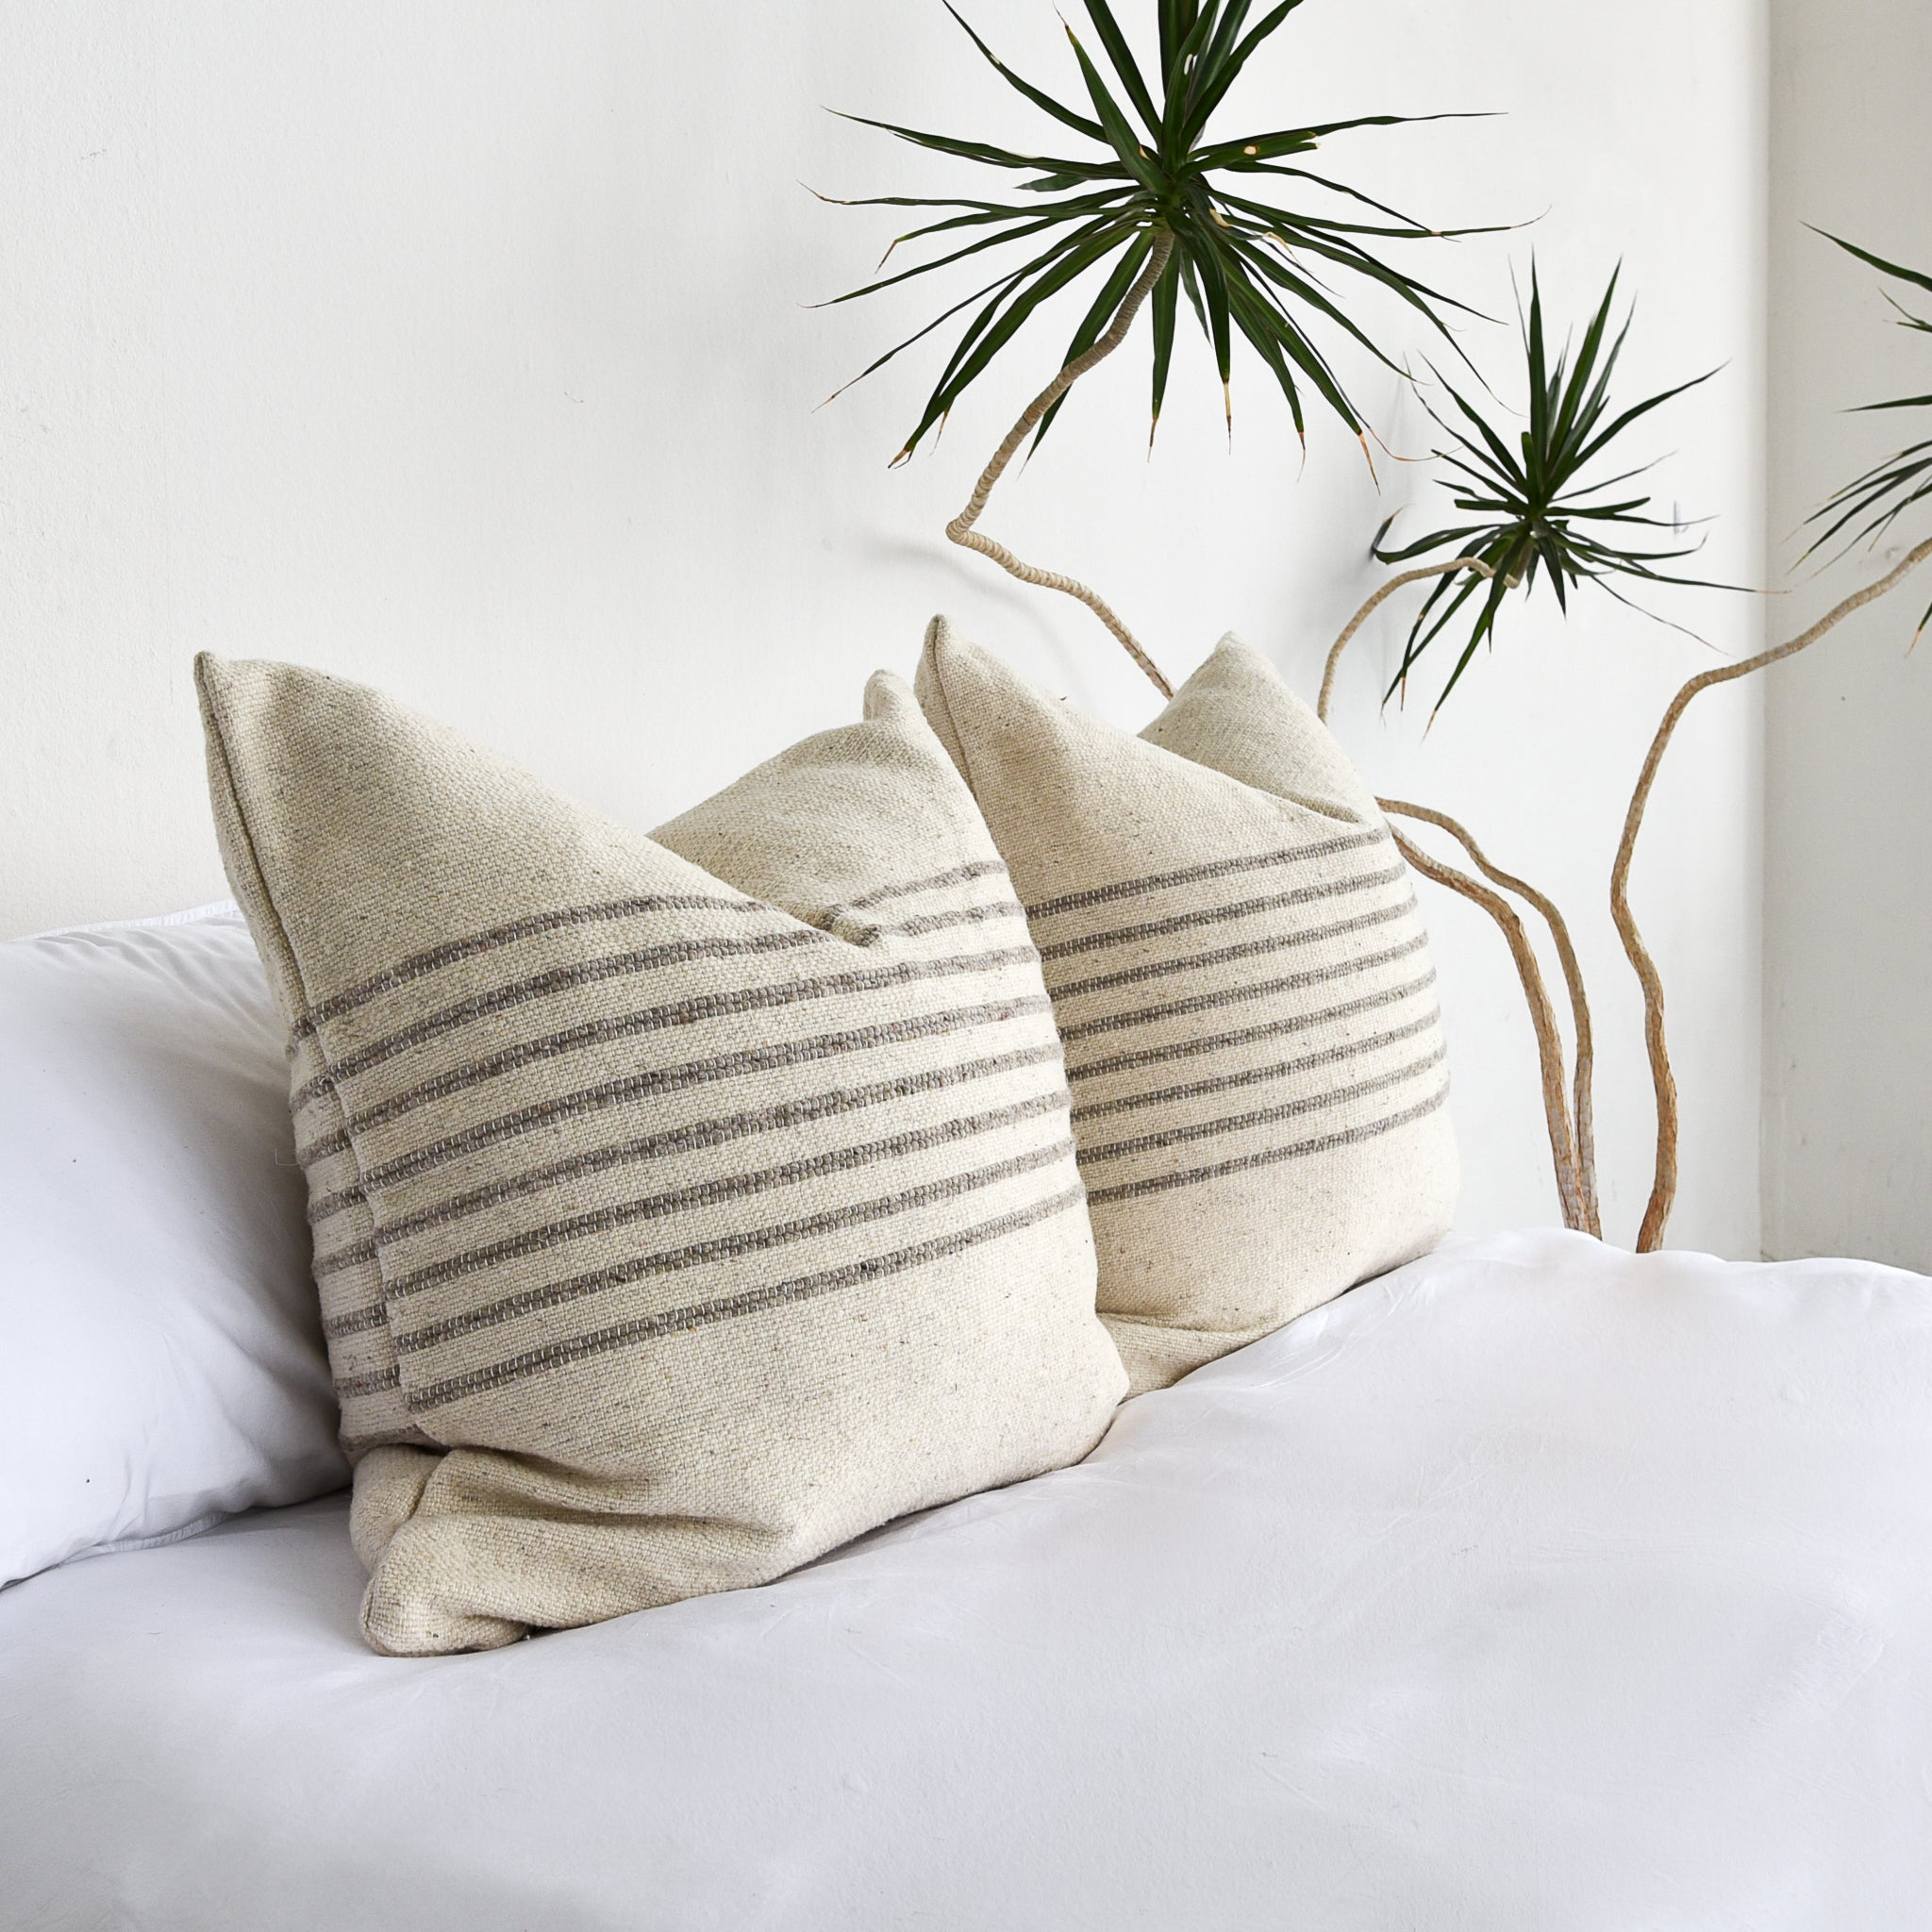 A pair of wool large throw pillows on a bed with all white bedding. A large yucca indoor plant is next to the bed.